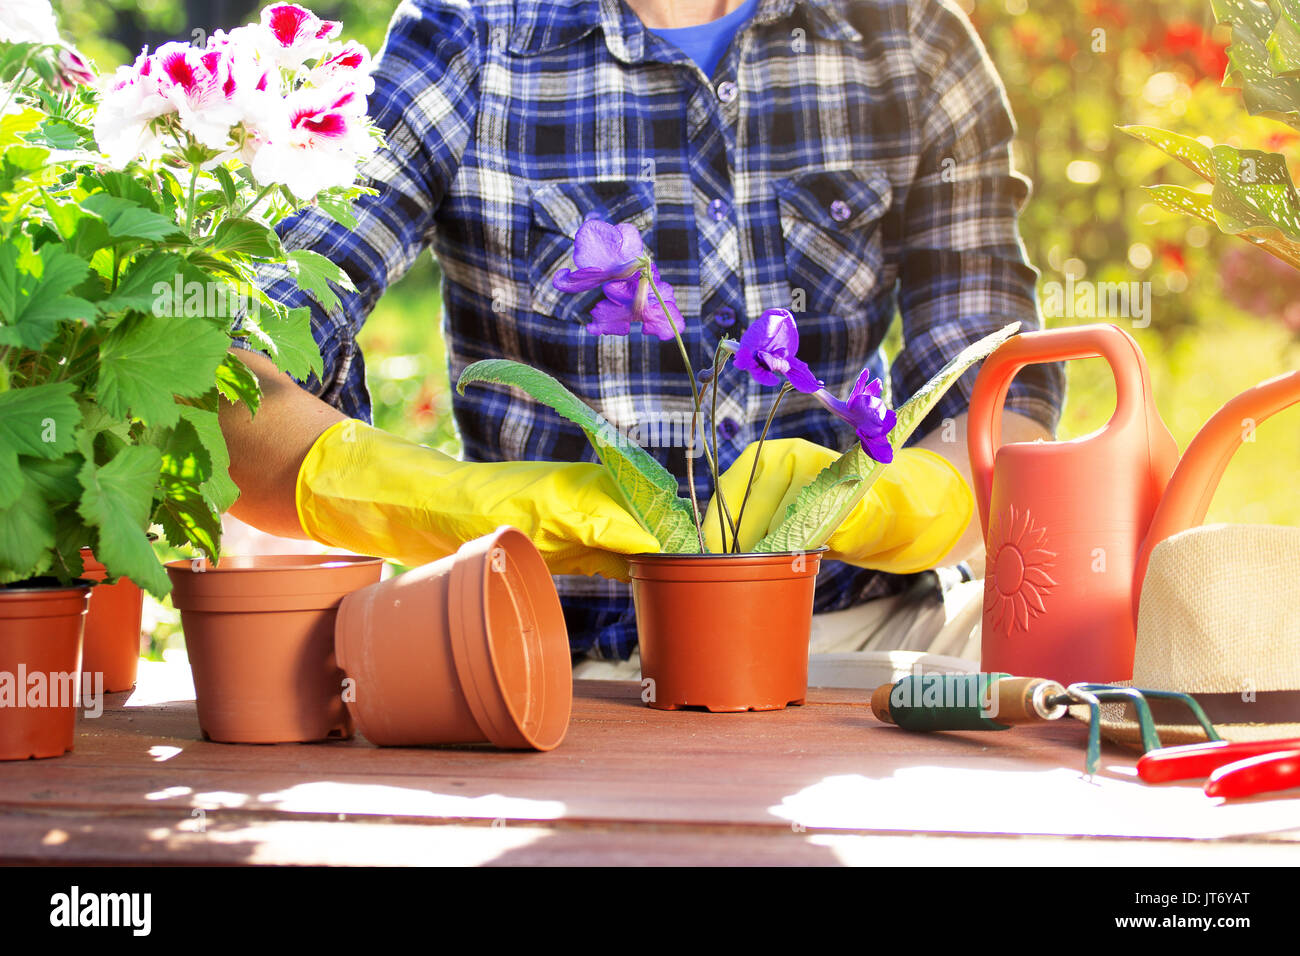 Cherishing my garden. Portrait of gardener's hands in checkered shirt and rubber gloves are planting flowers in the pots on the garden workspace. Flor - Stock Image